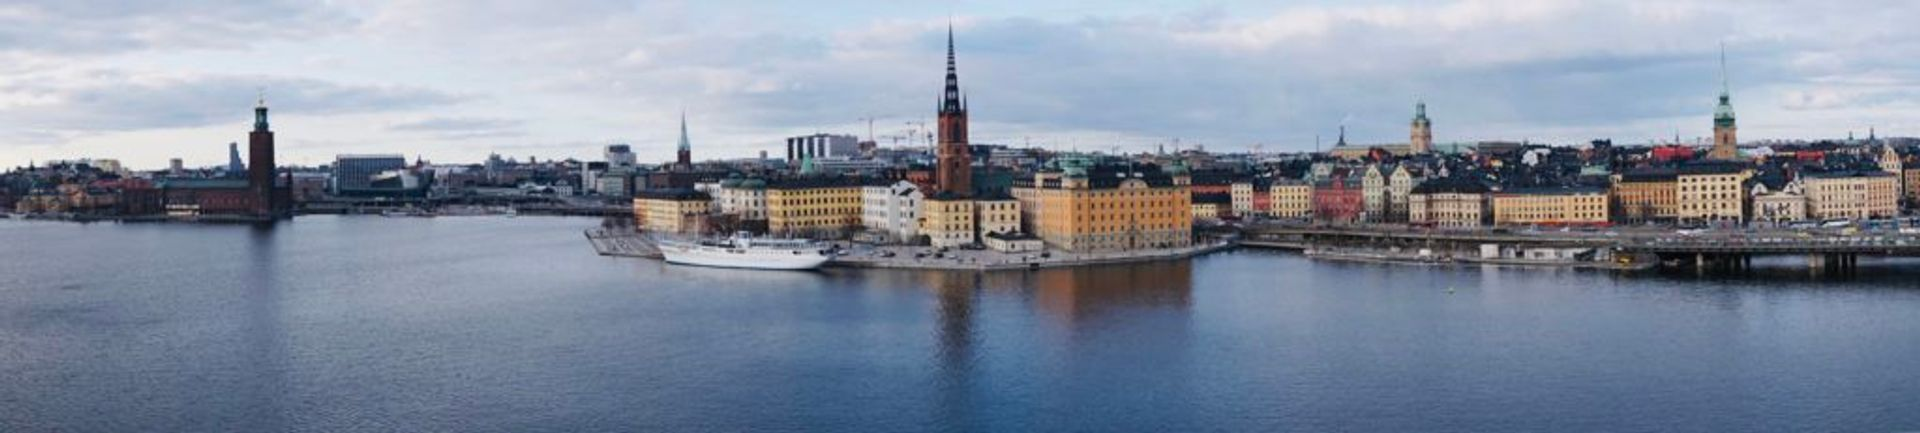 Wide shot of Stockholm's Old Town from a distance.